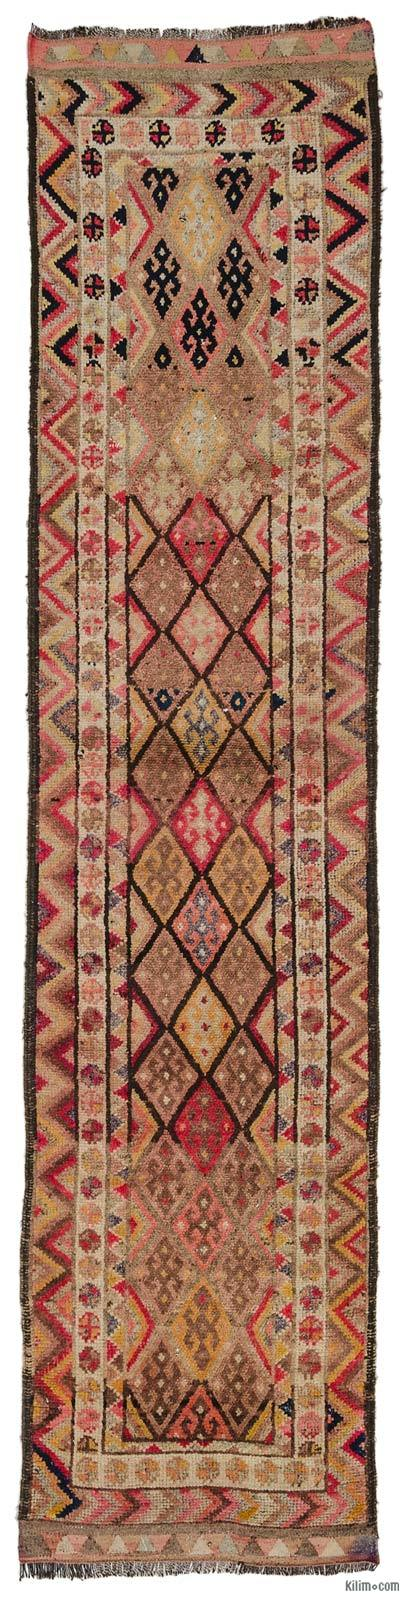 "Vintage Turkish Runner Rug - 2' 10"" x 11' 11"" (34 in. x 143 in.)"